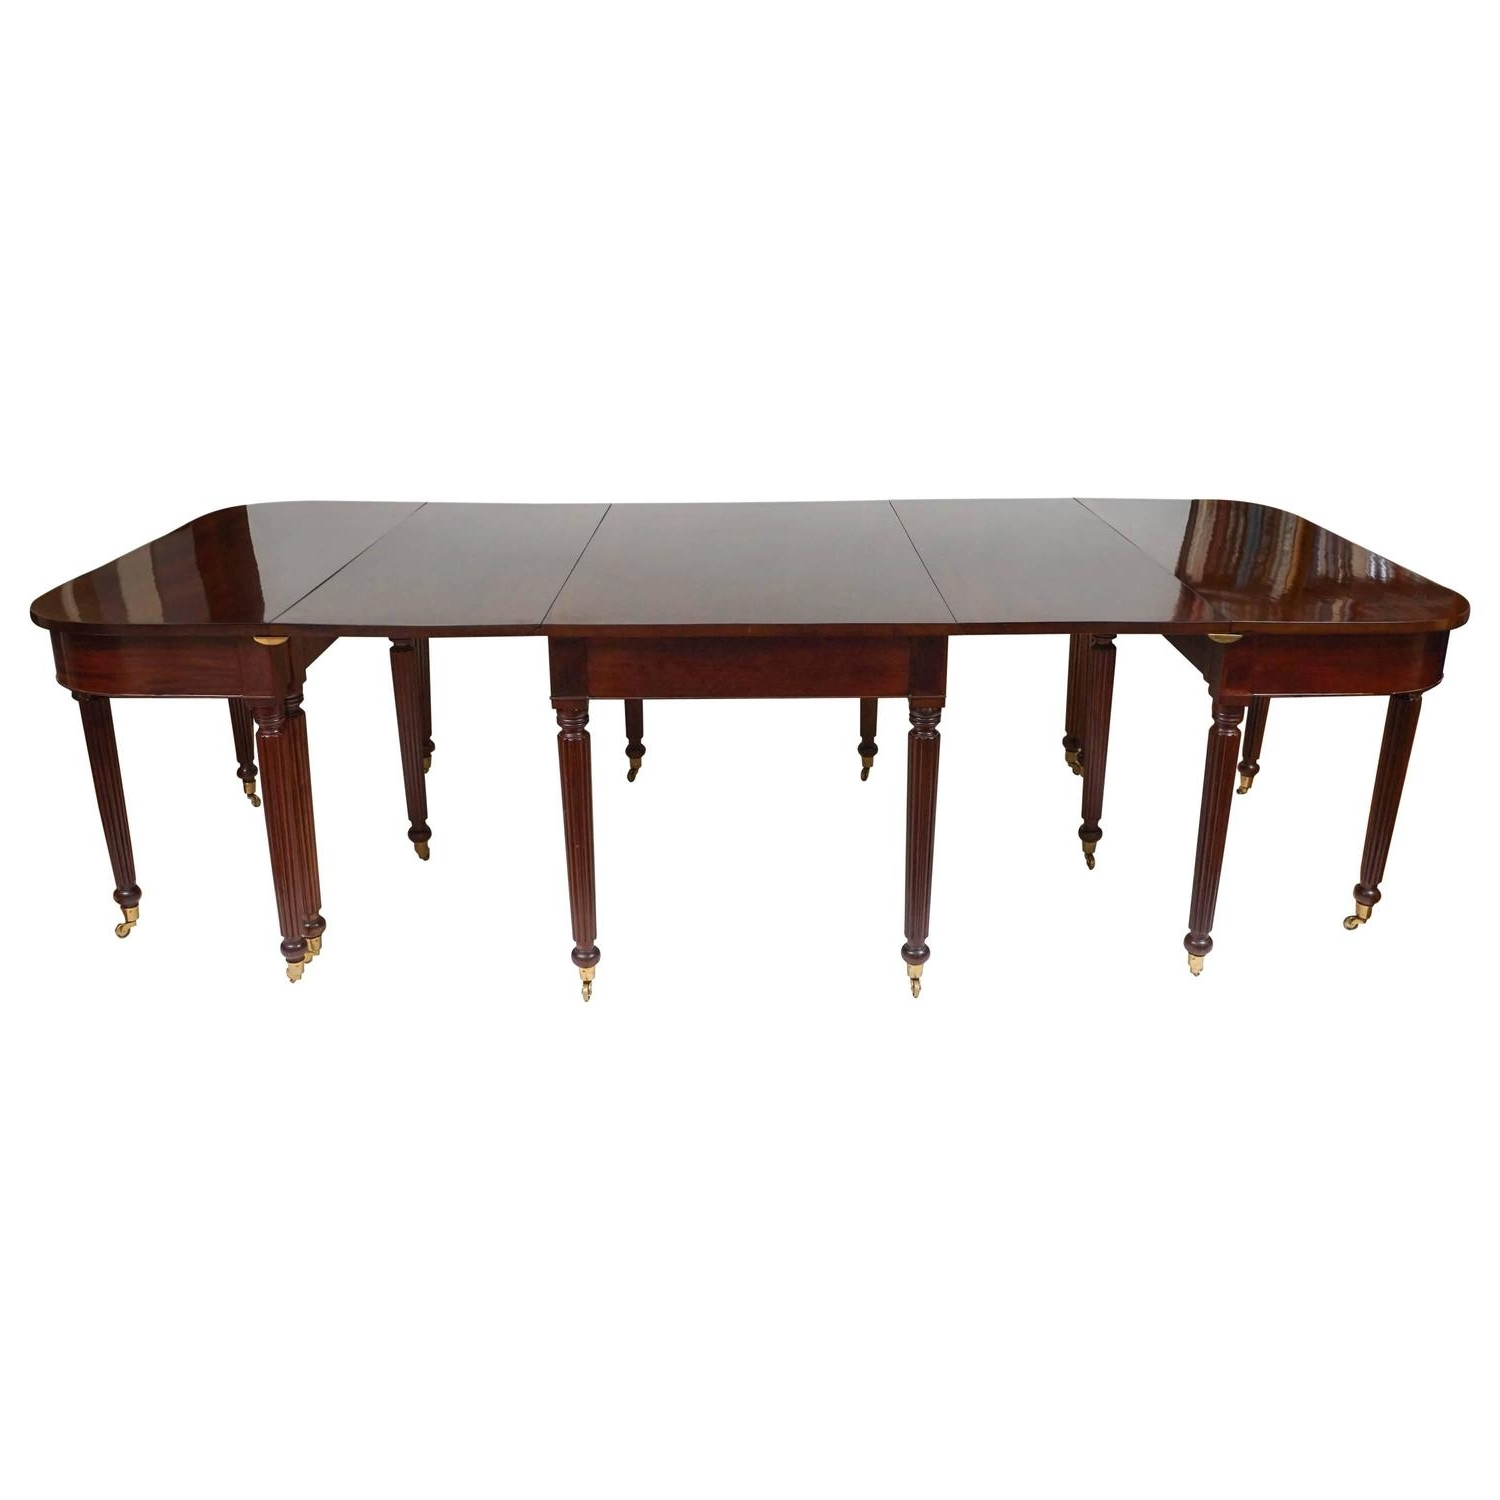 Most Current Mahogany Extending Dining Tables Regarding Sheraton Mahogany Extending Dining Table, Boston, Massachusetts (View 17 of 25)